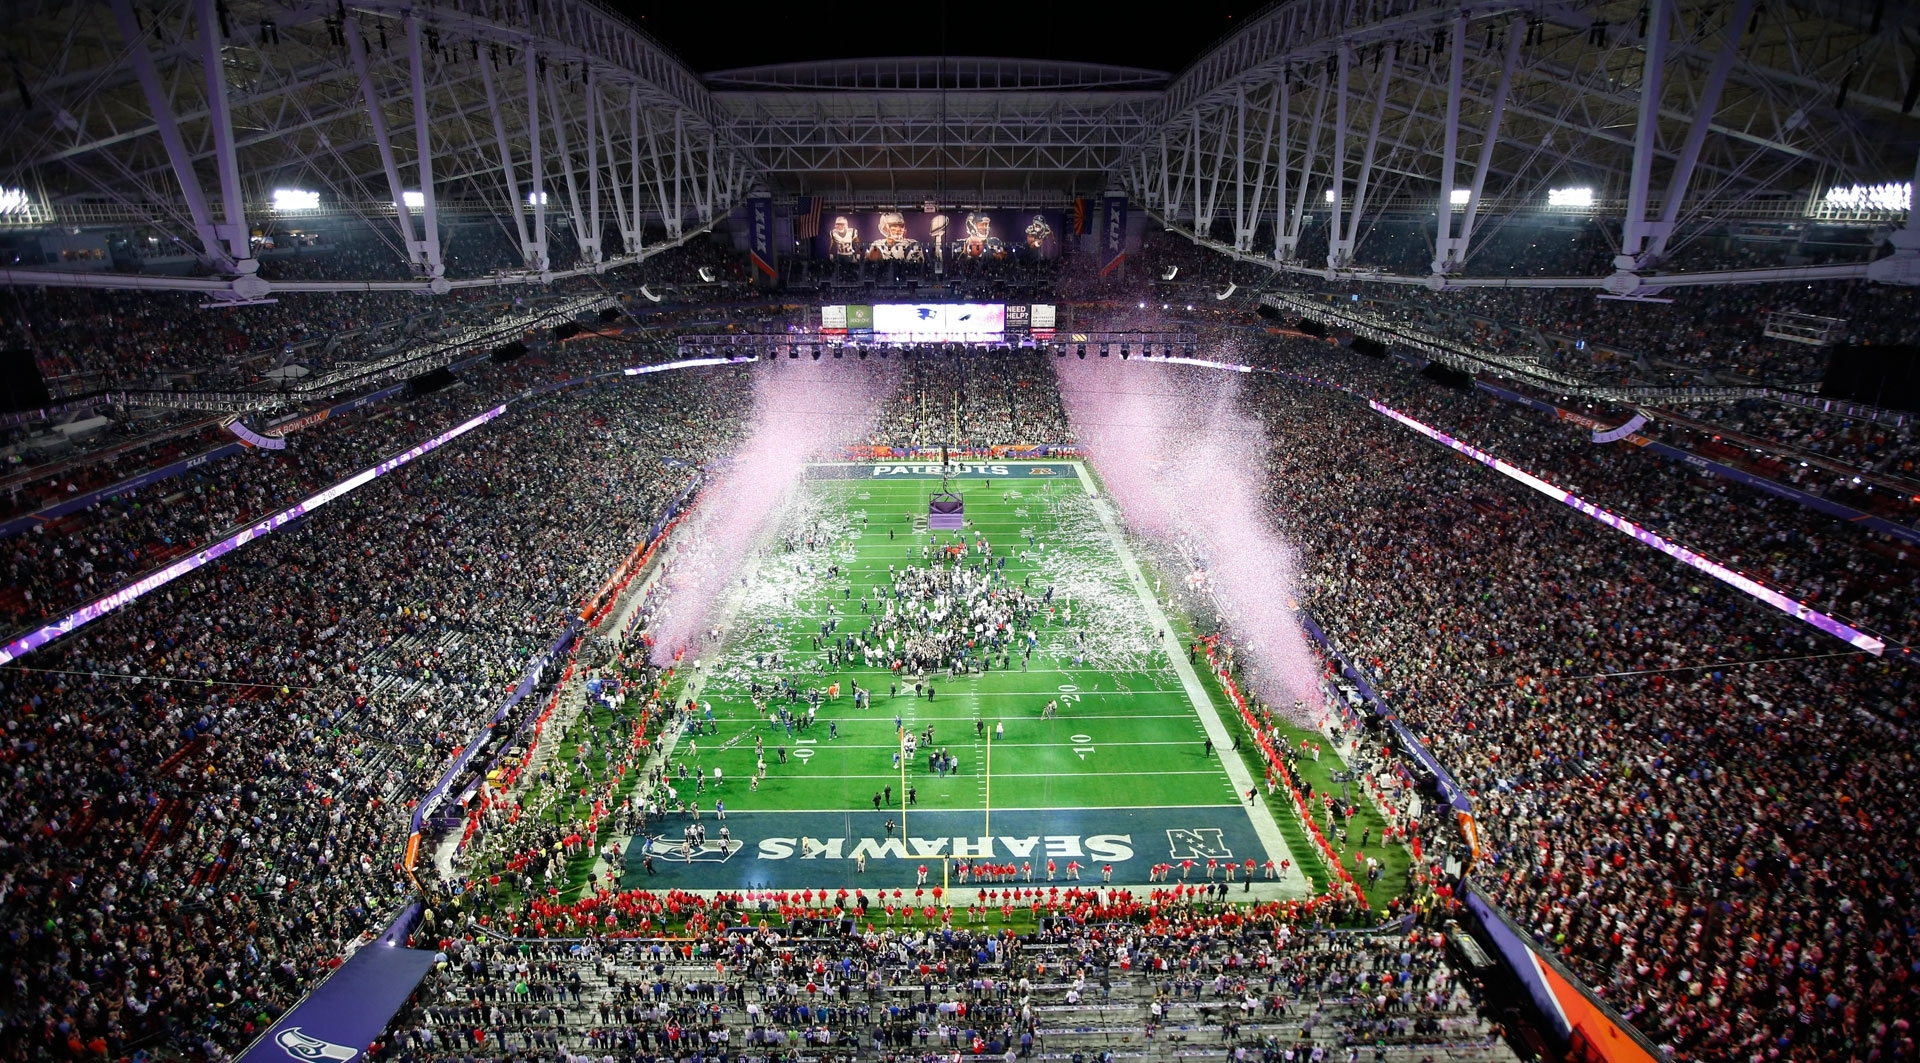 Super Bowl 2020: When, Where, What To Do & More Faqs with regard to Seating Capacity For Super Bowl